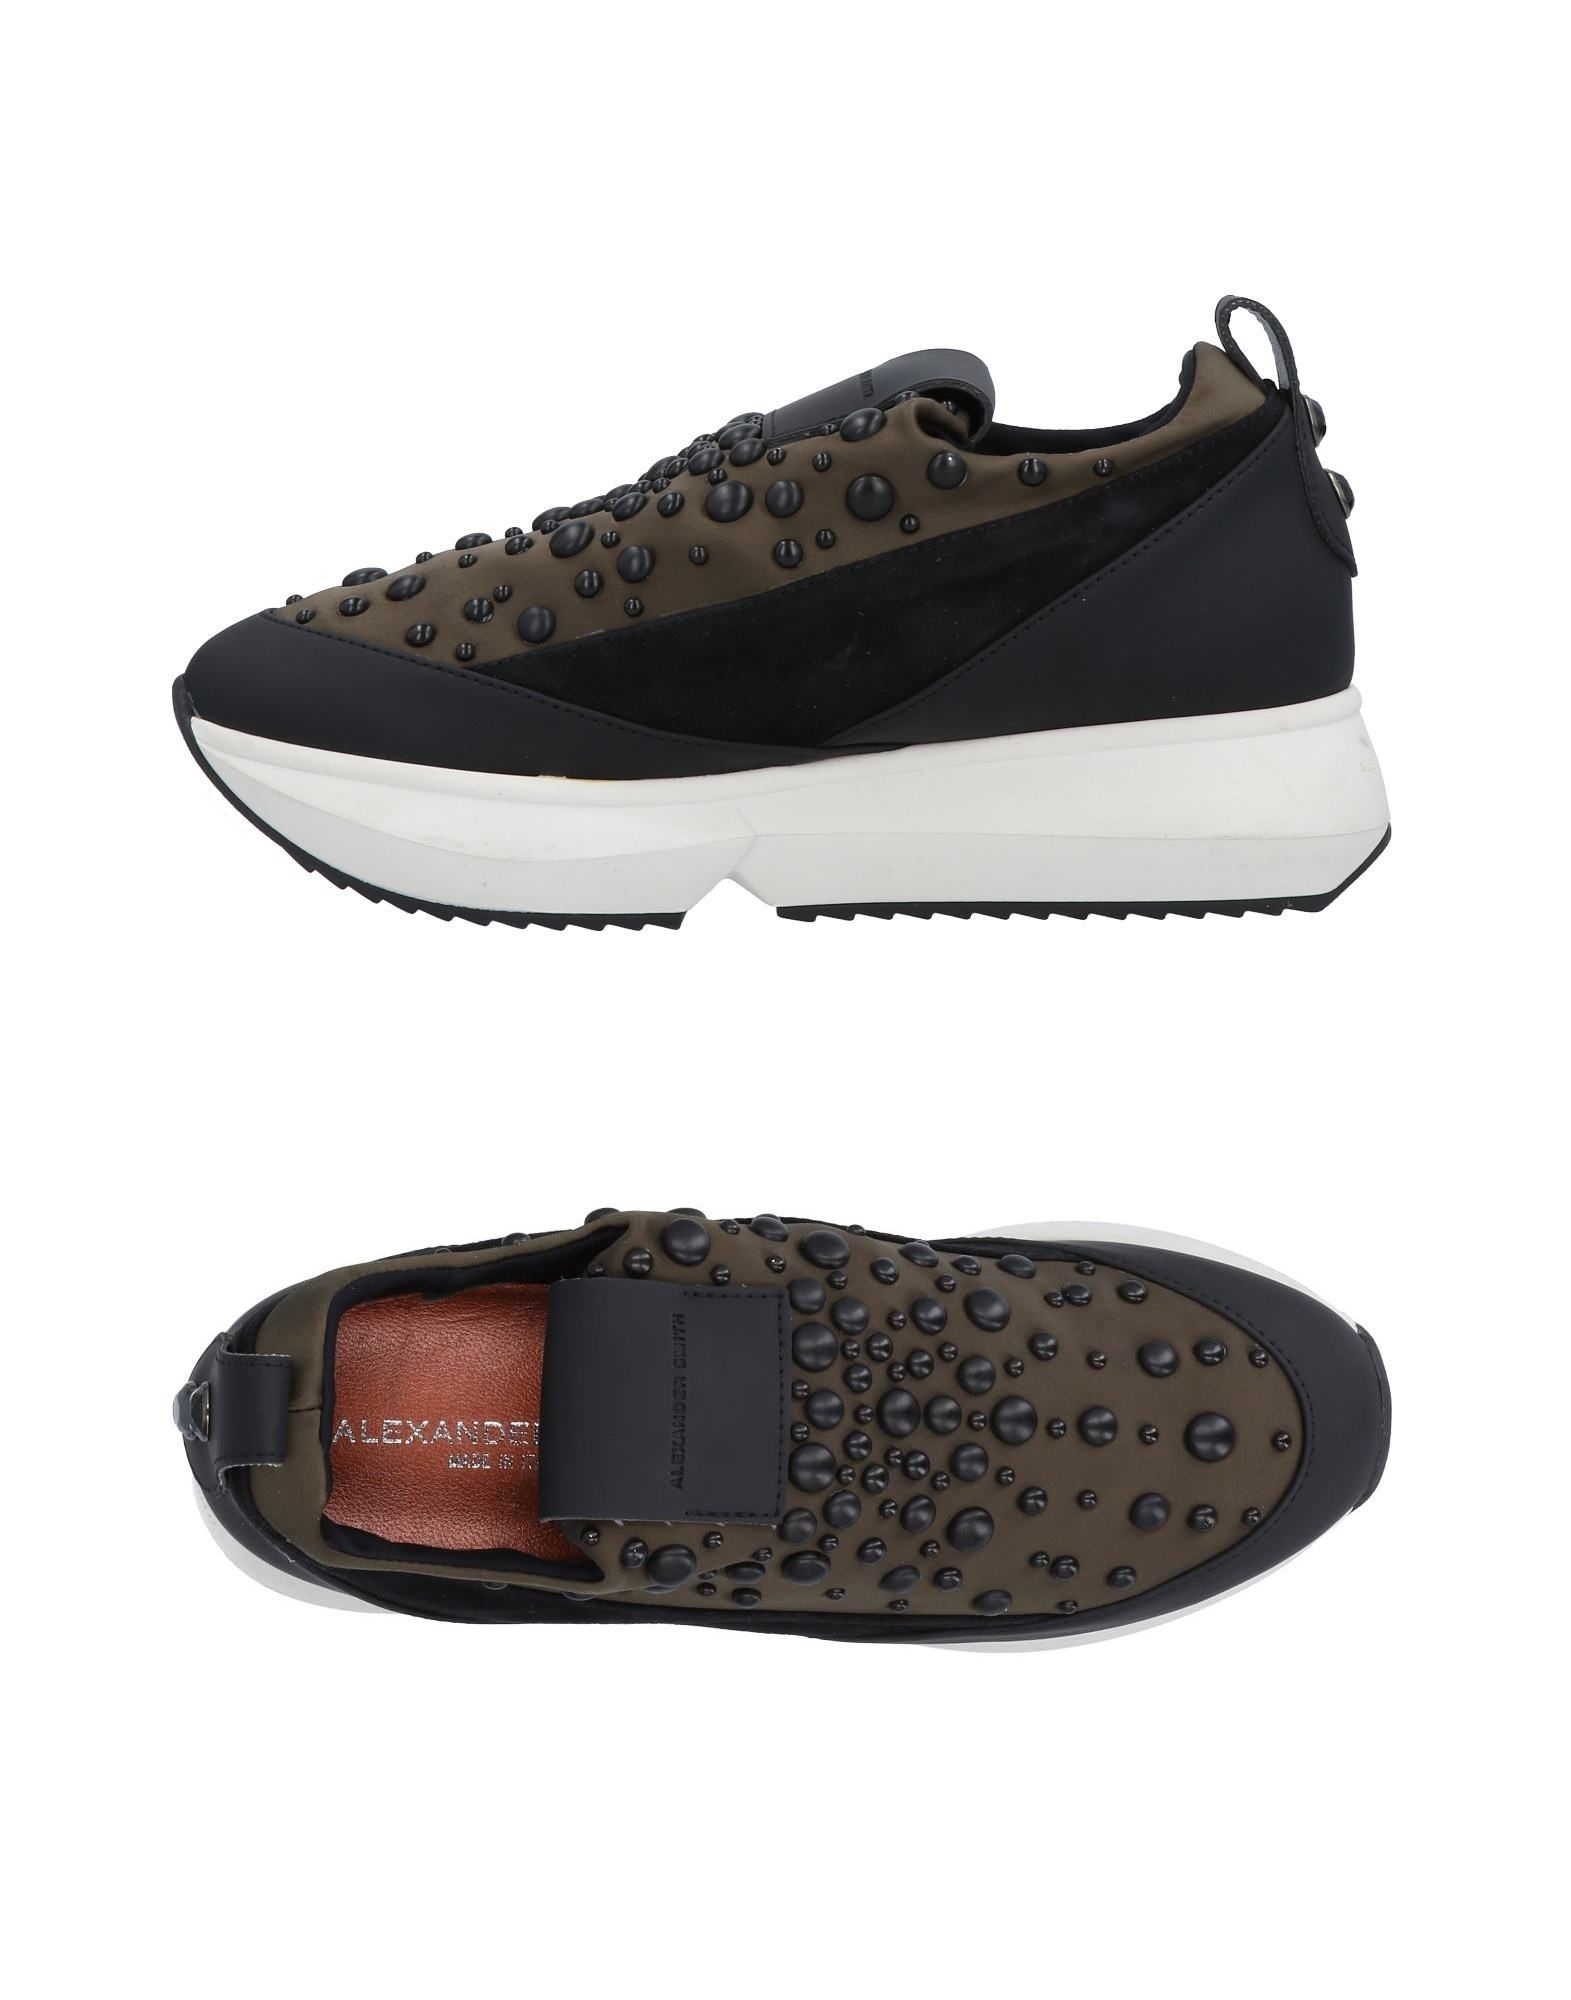 Sneakers Alexander Smith Donna 11504469PA - 11504469PA Donna 435052